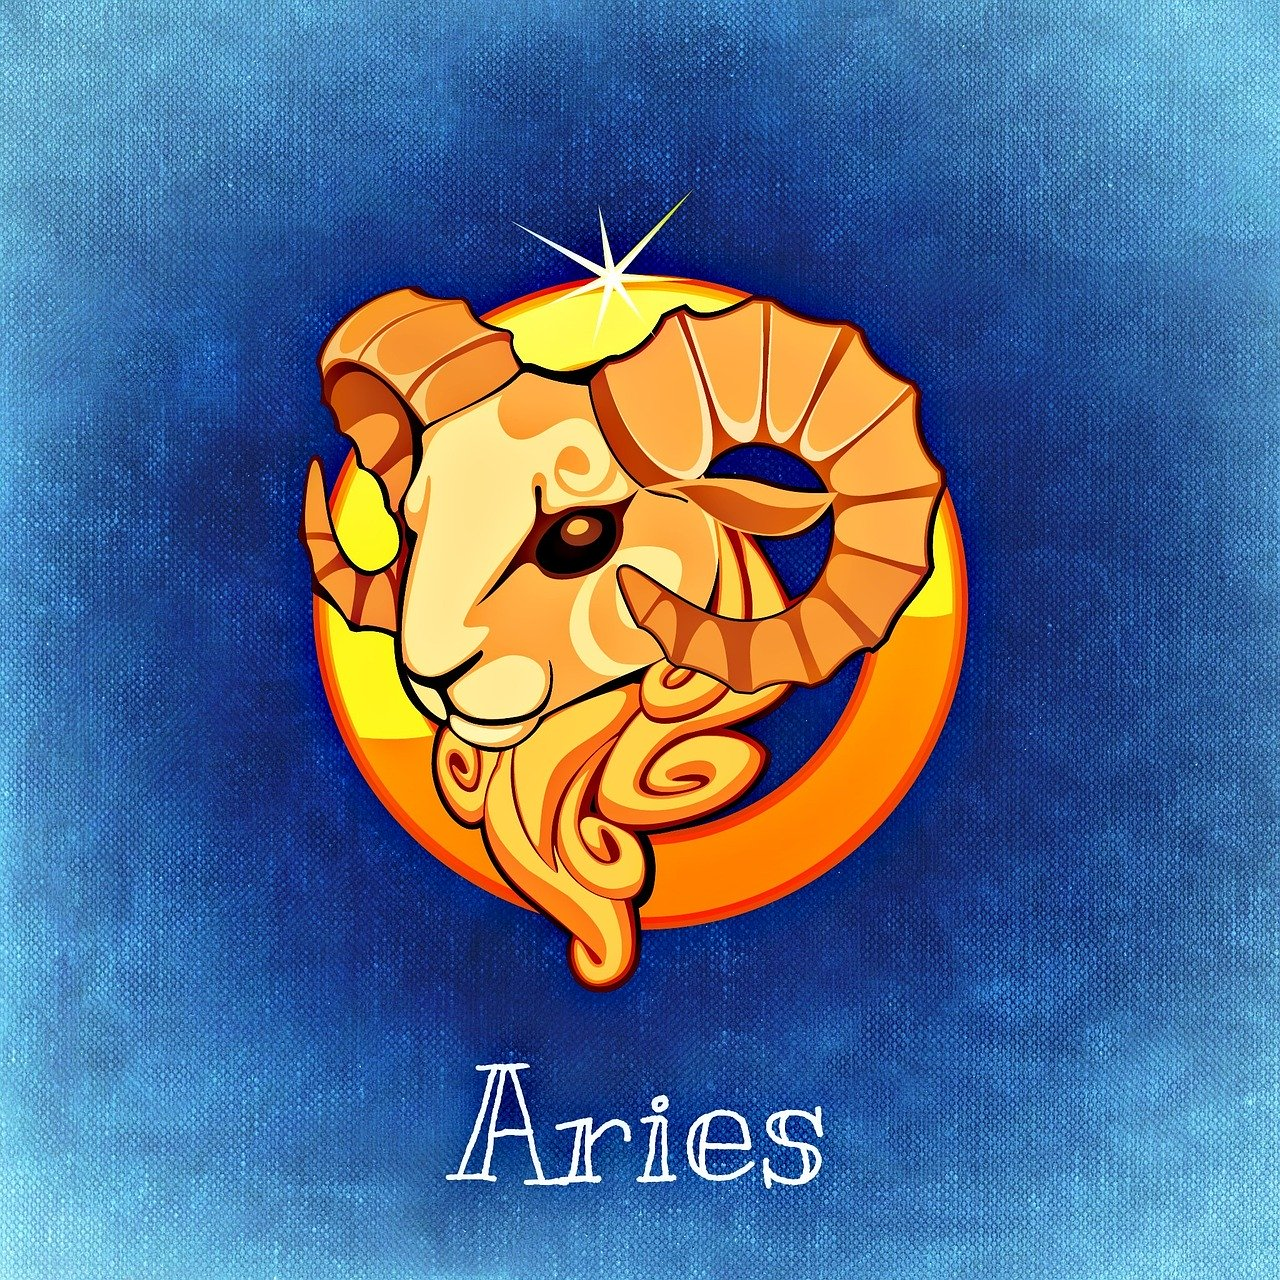 The symbol for the zodiac sign of Aries is shown illustrated in this file photo.